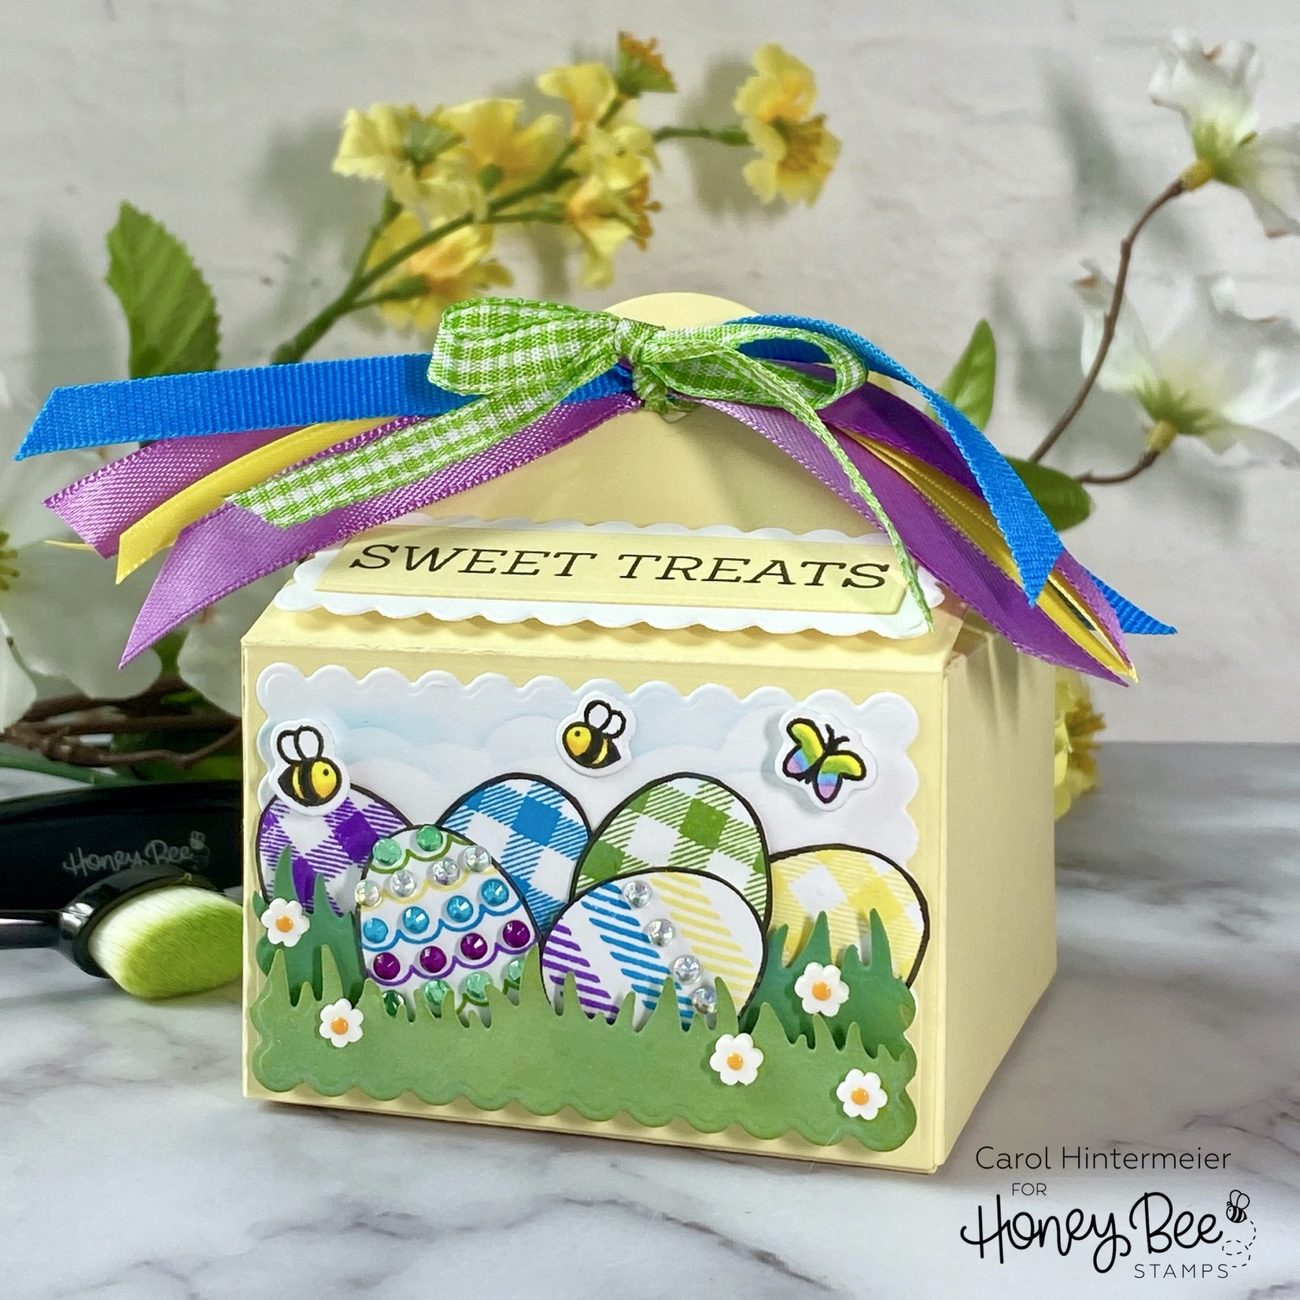 Honey Bee Stamps Honey Cuts - Sweet Treat Box